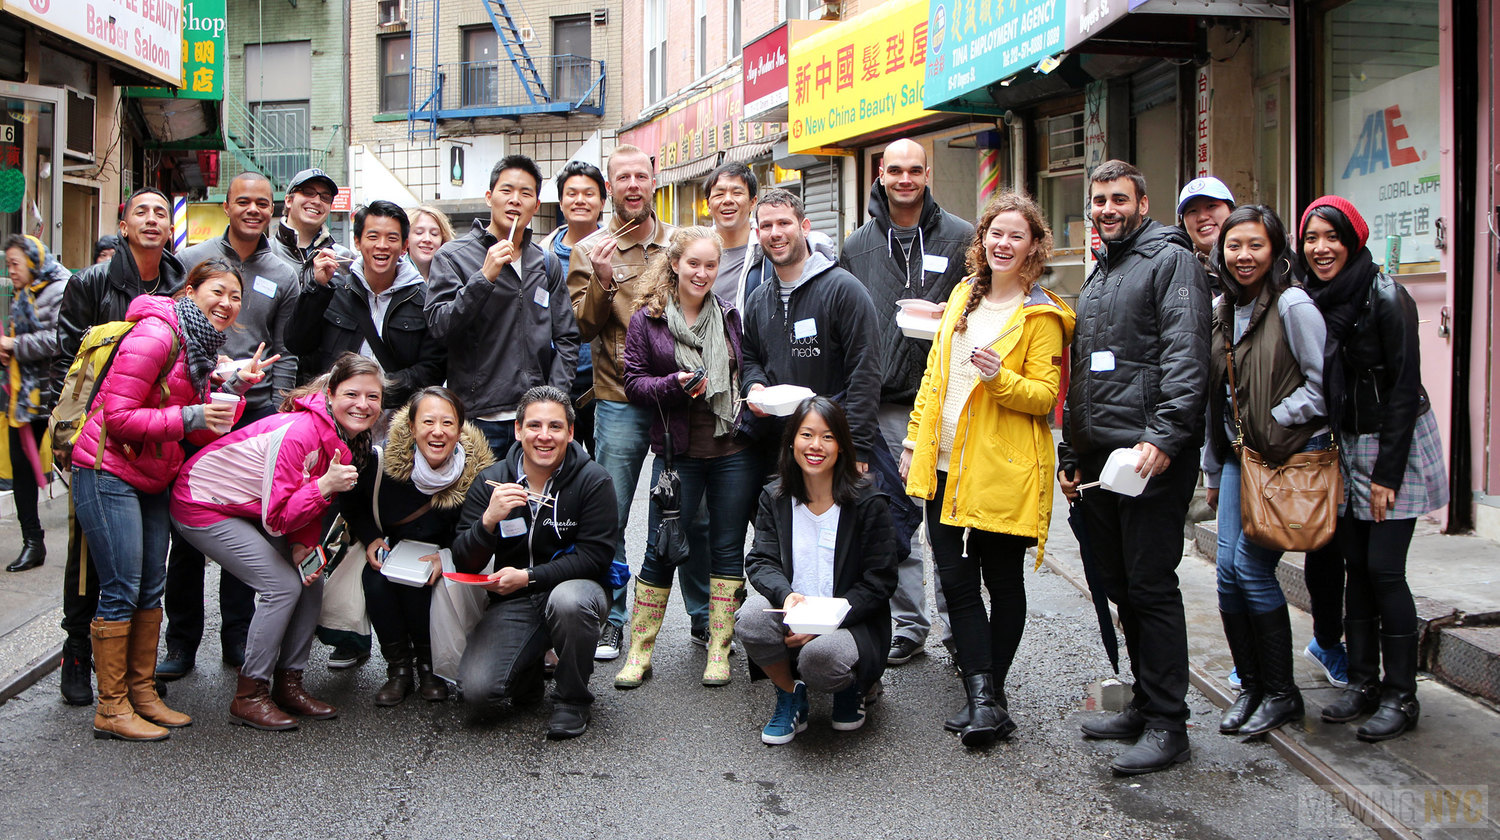 "Crawlers | Check out Viewing NYC for more info on the 2015 Chinatown Dumpling Crawl and to see who won!  <a href=""https://viewing.nyc/the-best-dumpling-in-the-2015-viewing-nyc-chinatown-dumpling-crawl-is/"" rel=""nofollow"">viewing.nyc/the-best-dumpling-in-the-2015-viewing-nyc-chi...</a>"